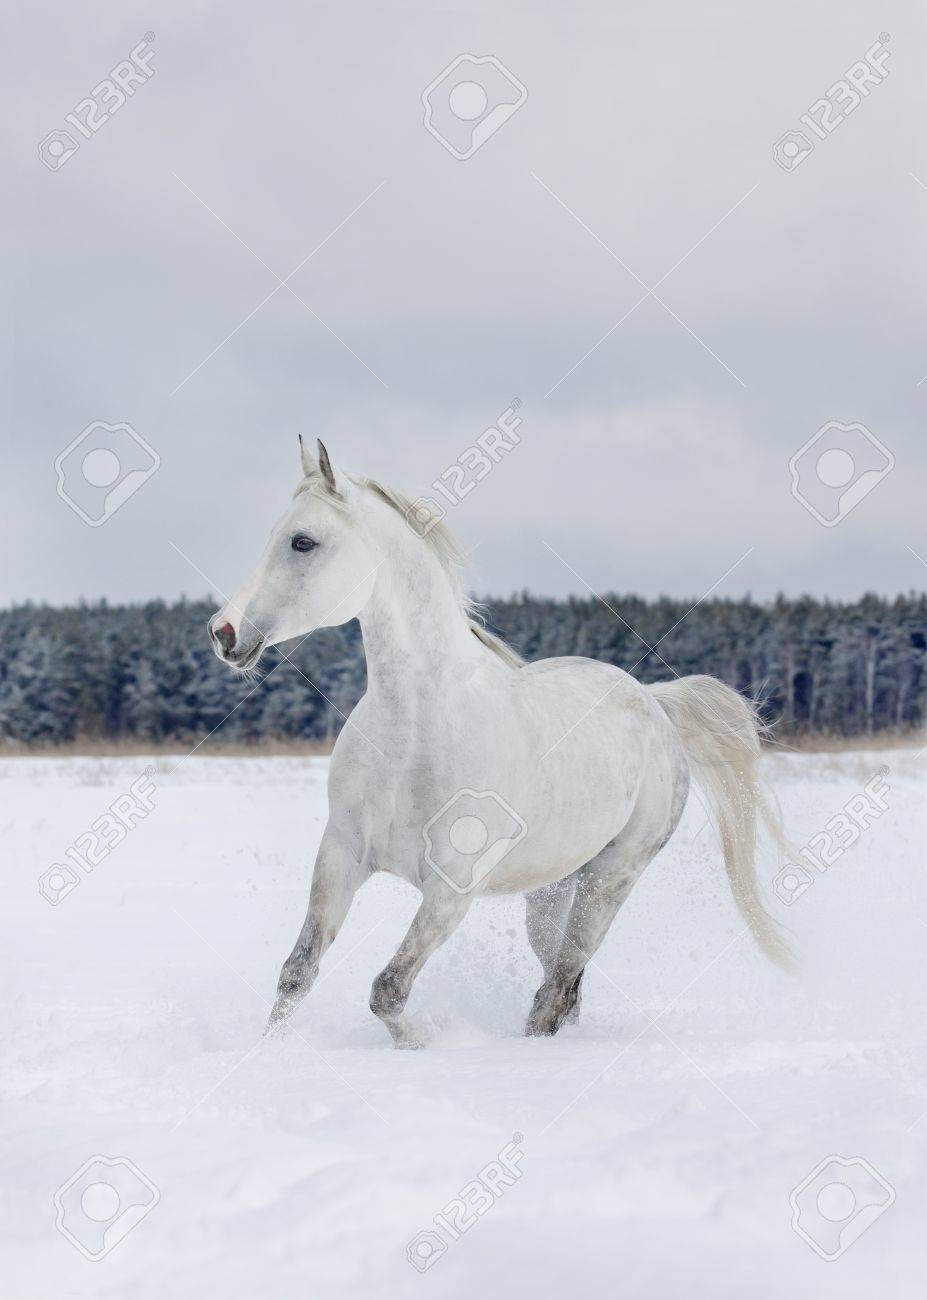 arab horse in winter Stock Photo - 8770711